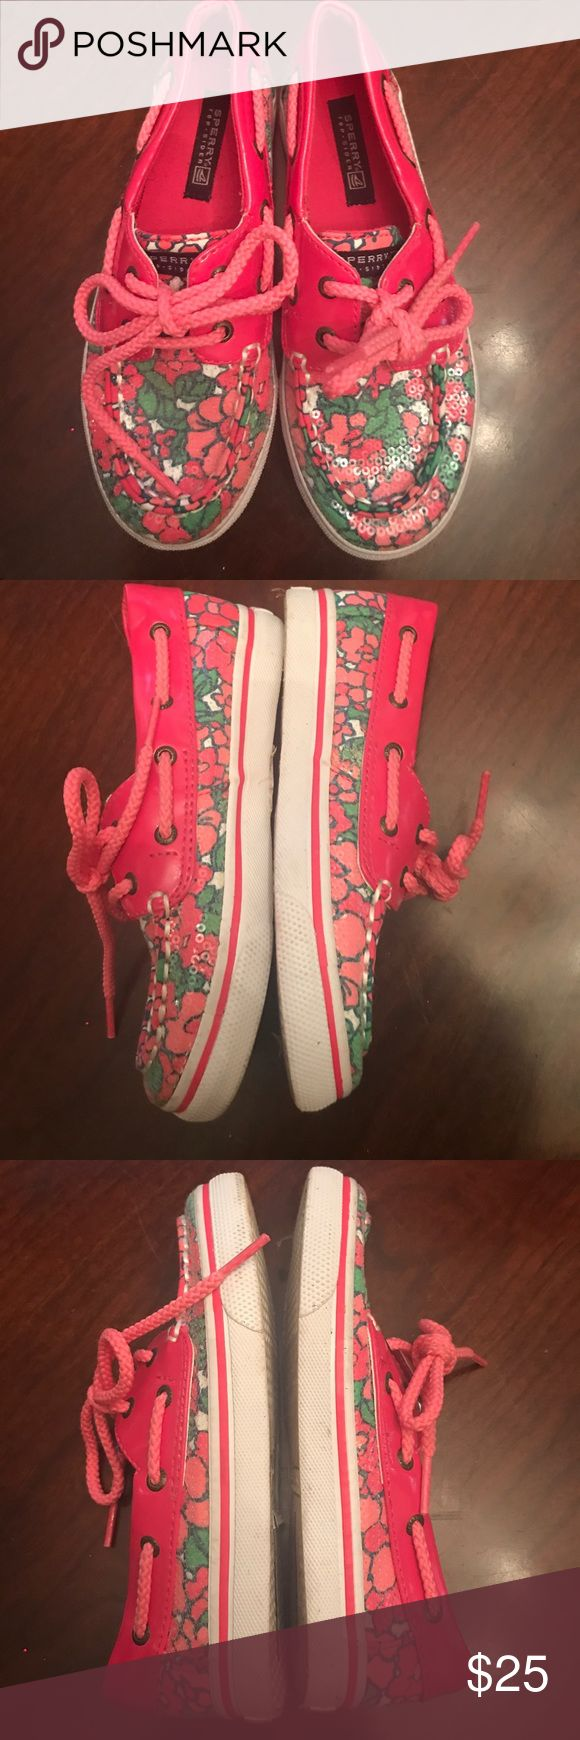 Girls Sperry top-siders Gently used girls Authentic Sperry top-siders. Floral pattern. Still have plenty of life left. US Size 12. Cute and perfect for the summer 💗. Sperry Top-Sider Shoes